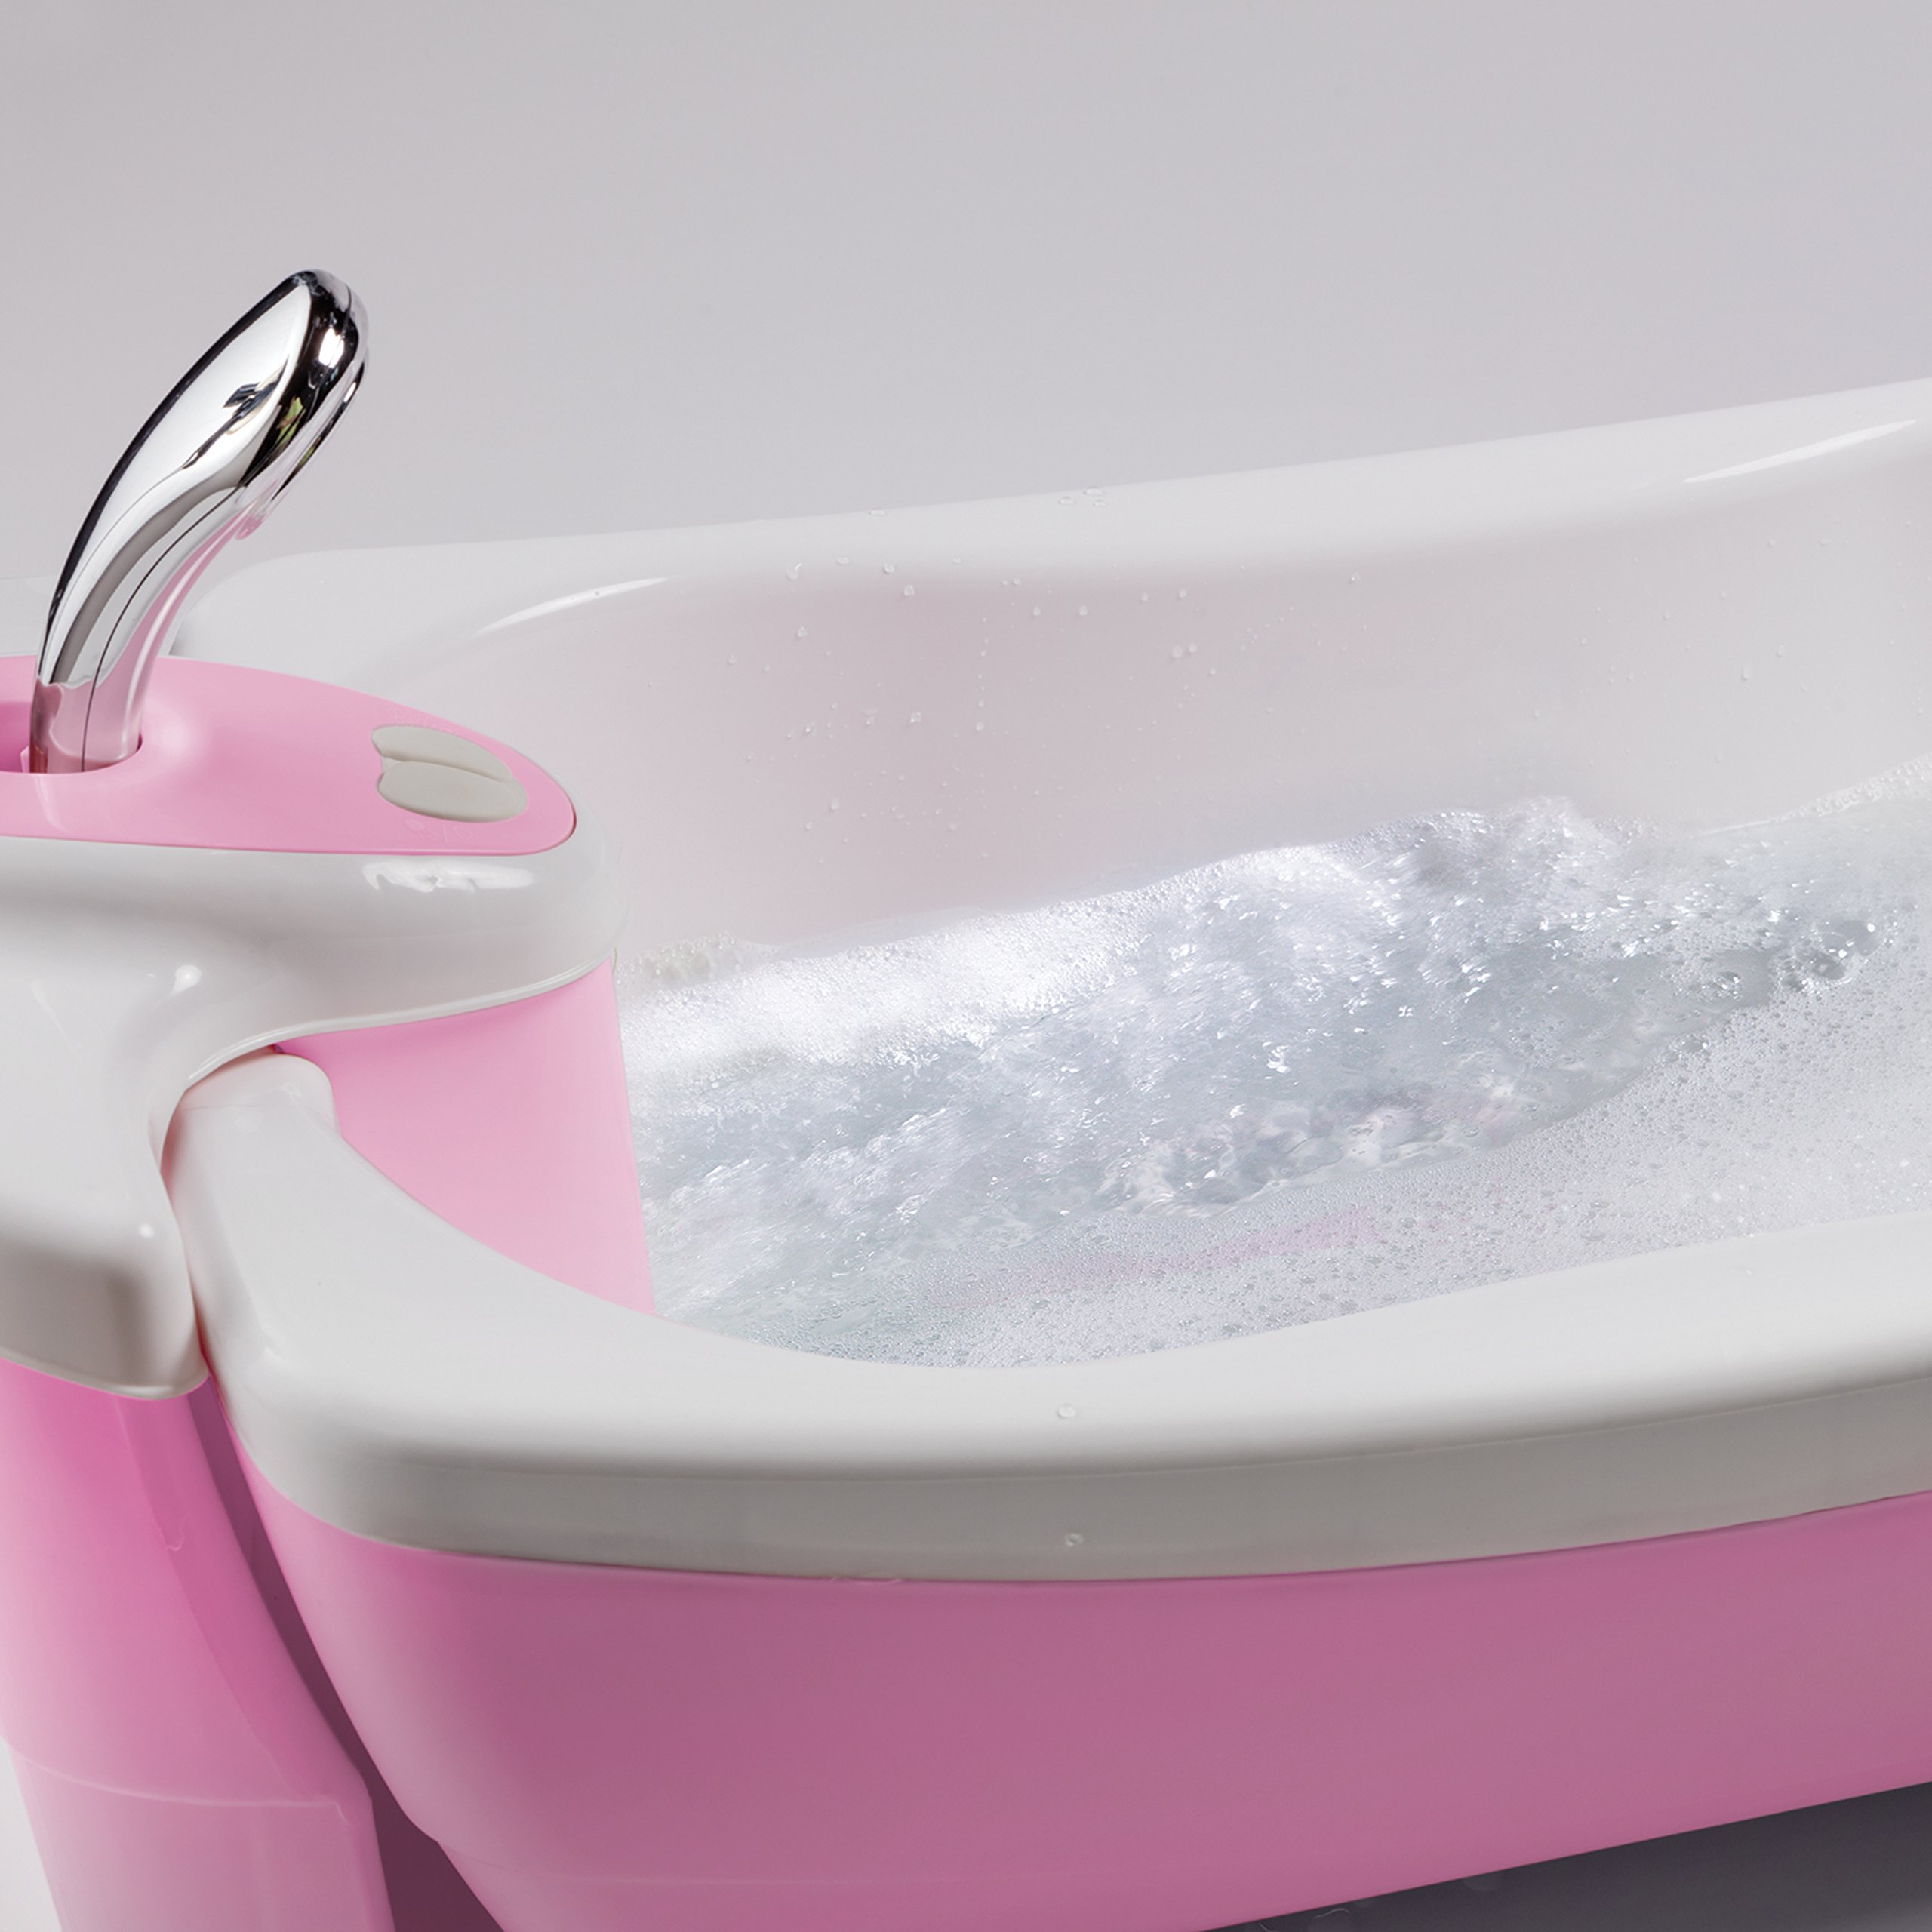 Summer Infant Lil Luxuries Whirlpool Bubbling Spa & Shower Bath Tub, Pink by Summer Infant (Image #3)